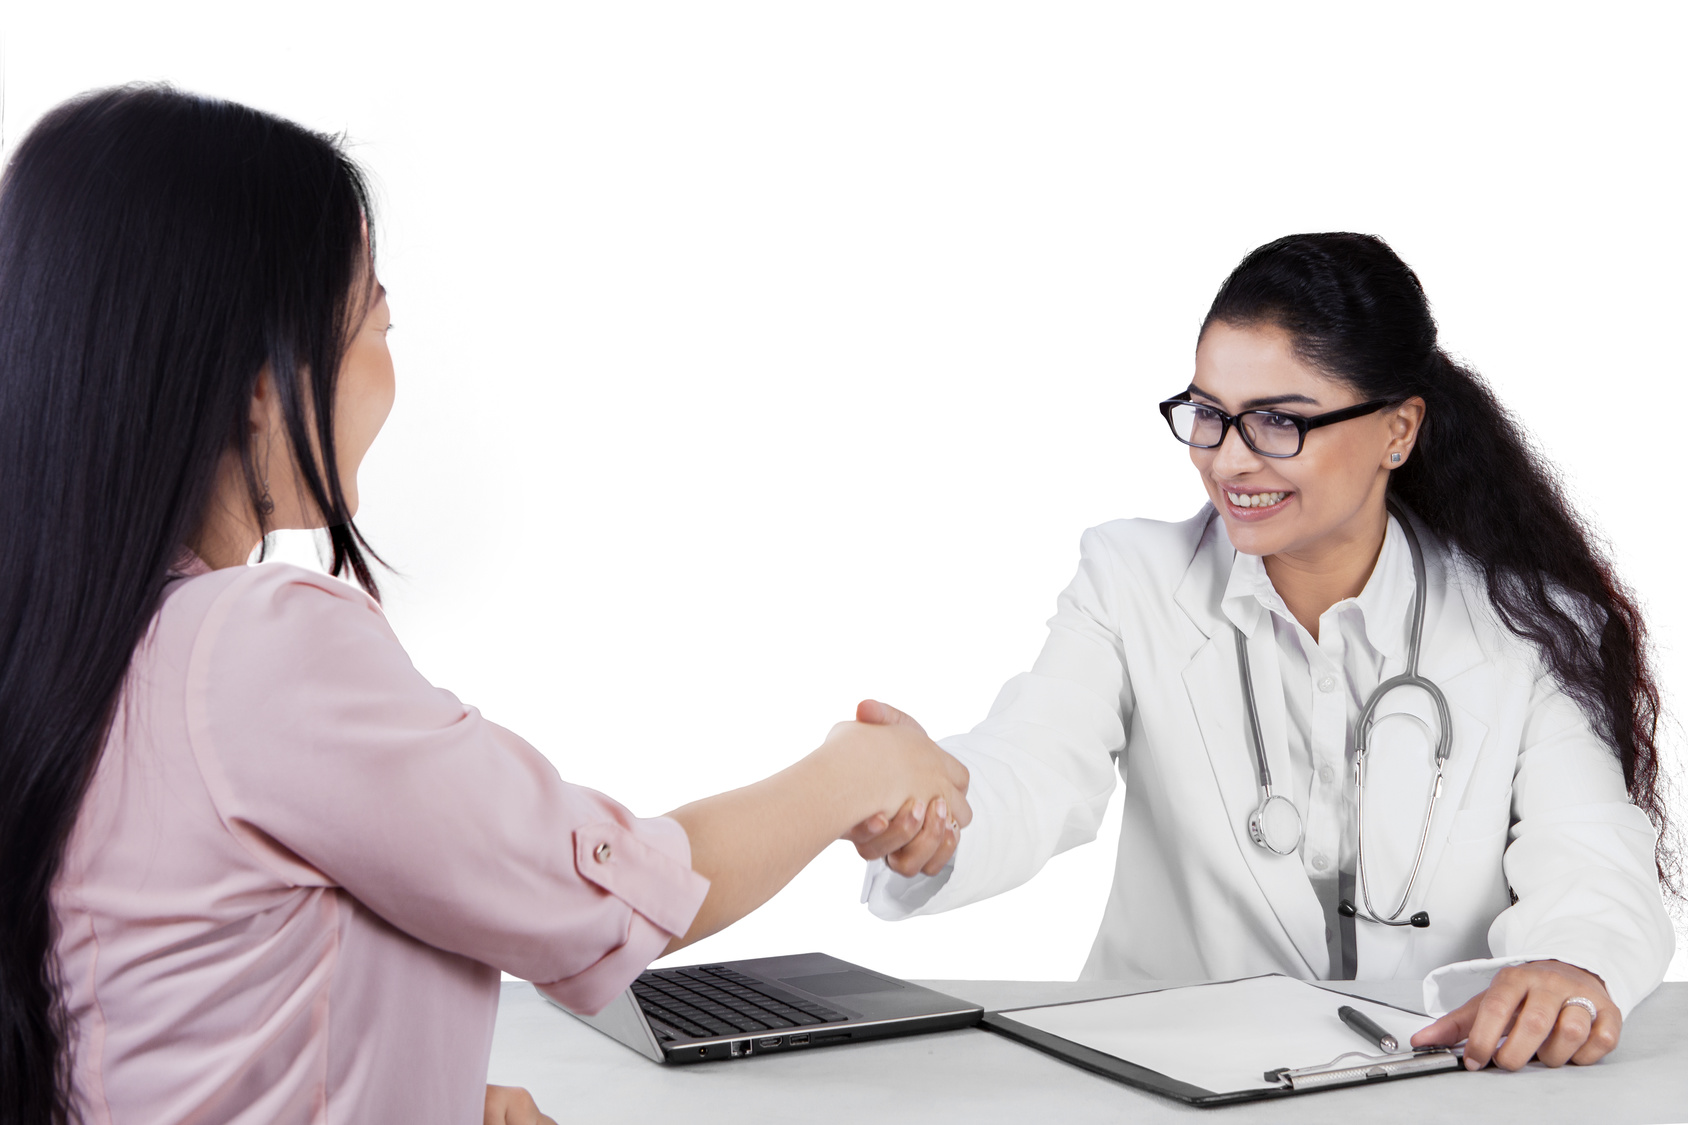 doctor and patient shaking hands and smiling